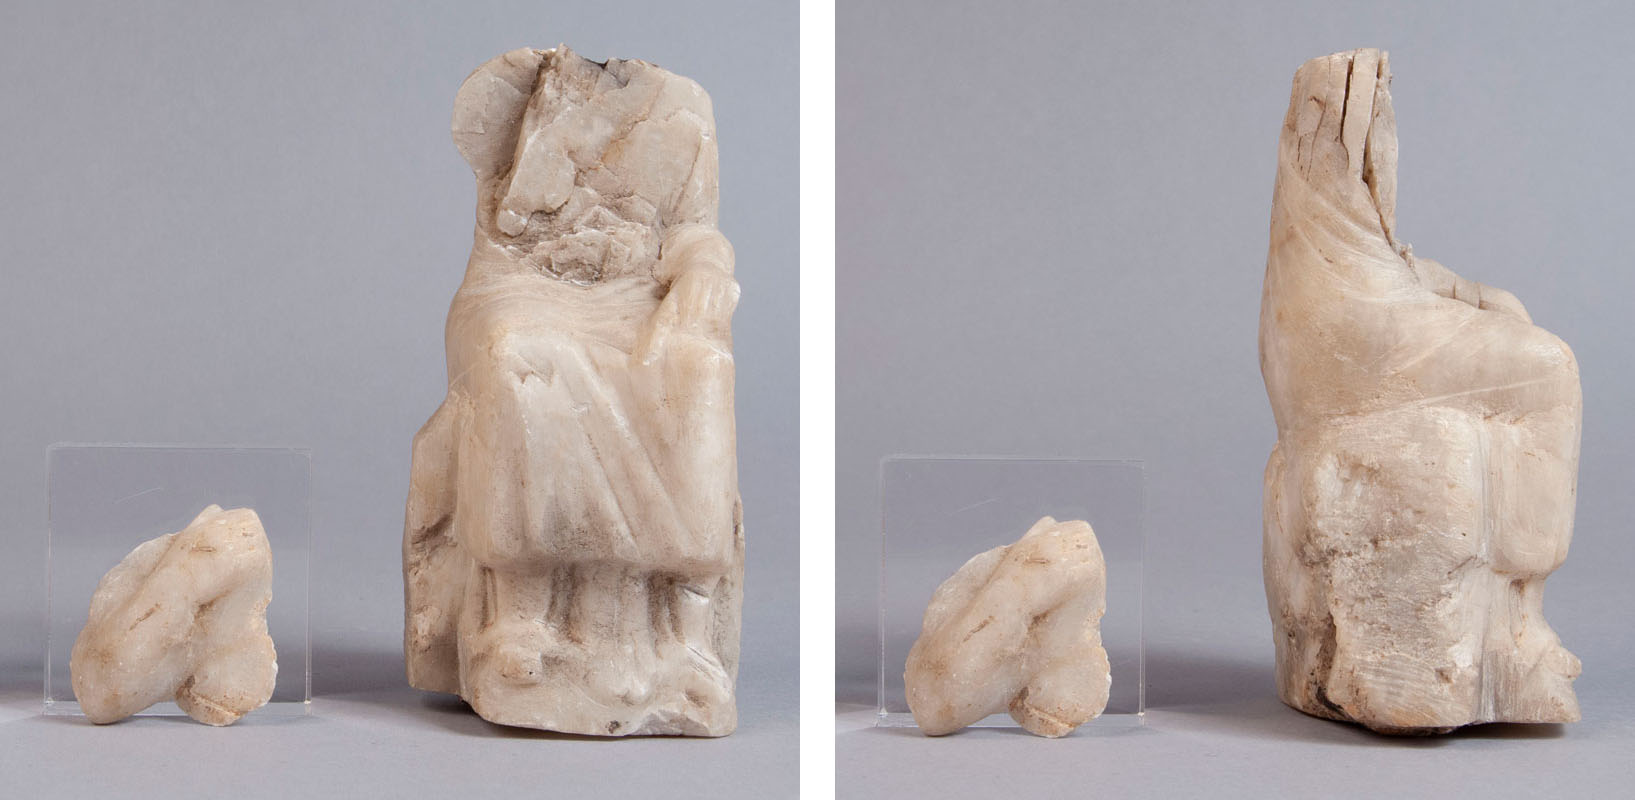 Seated figurine carved from alabaster